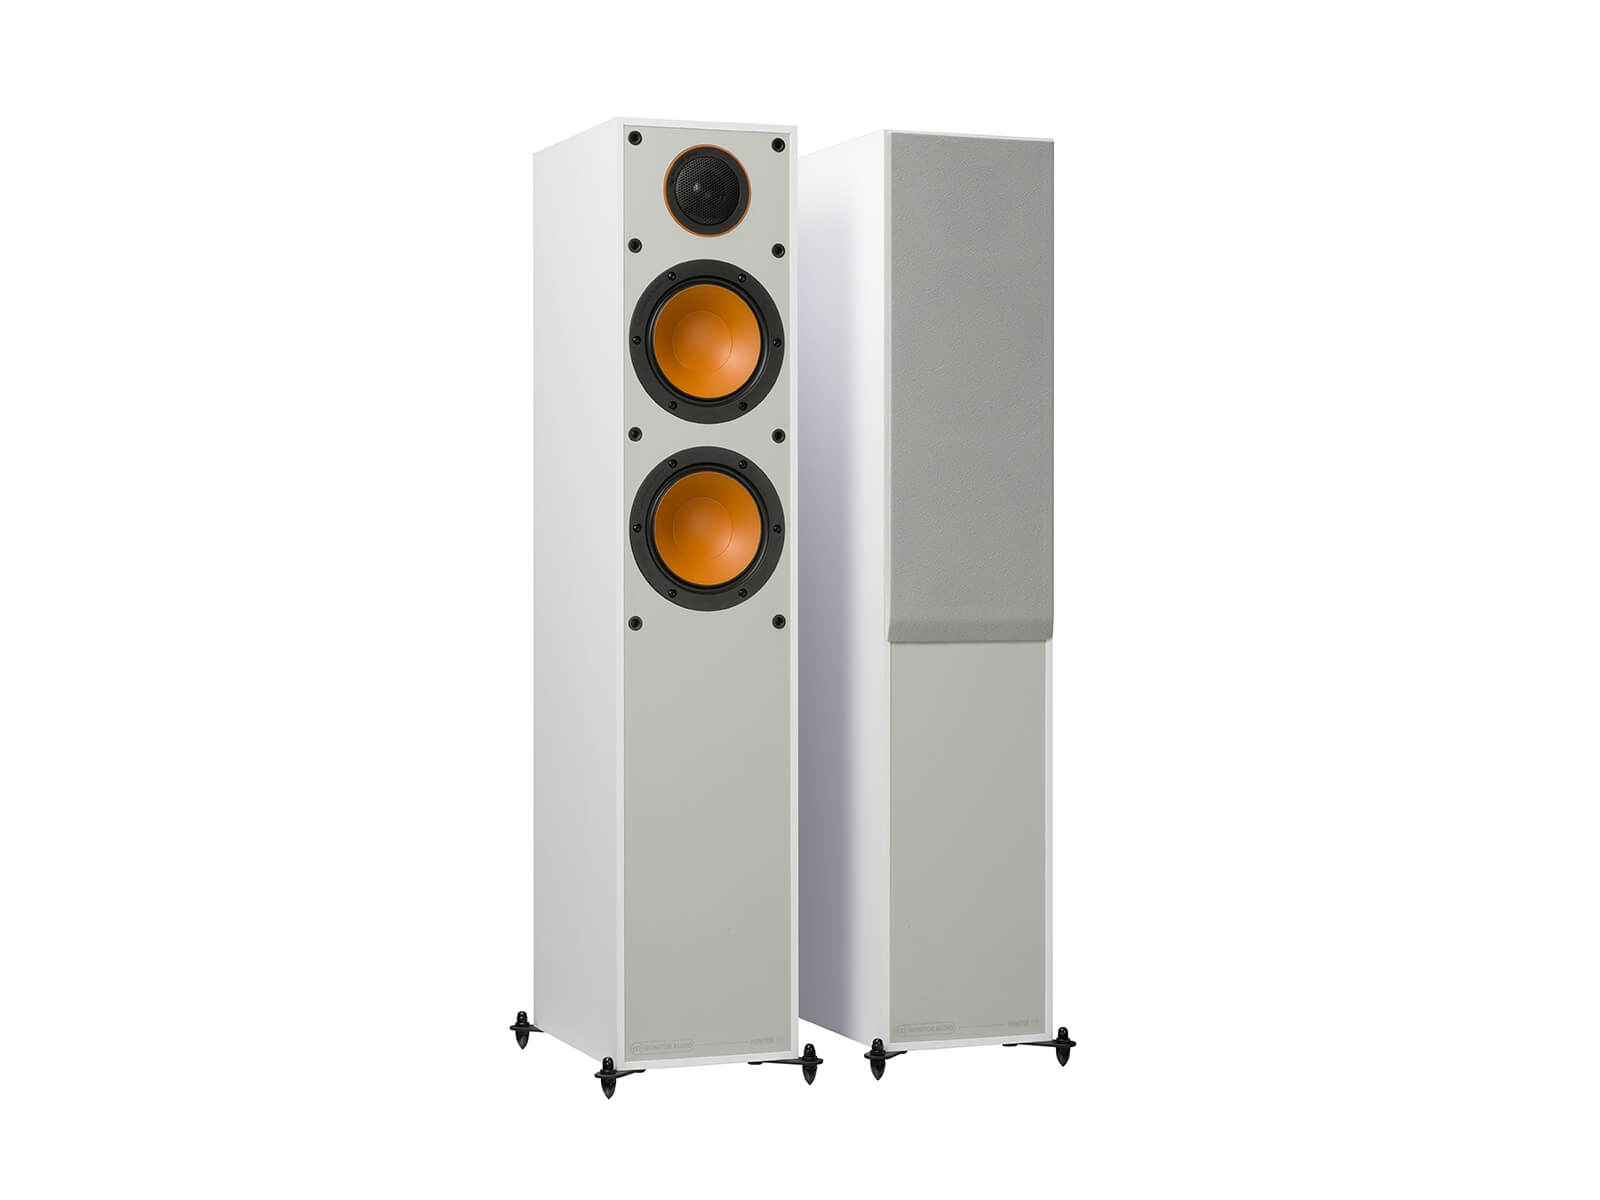 Monitor 200, floorstanding speakers, with and without grille in a white finish.